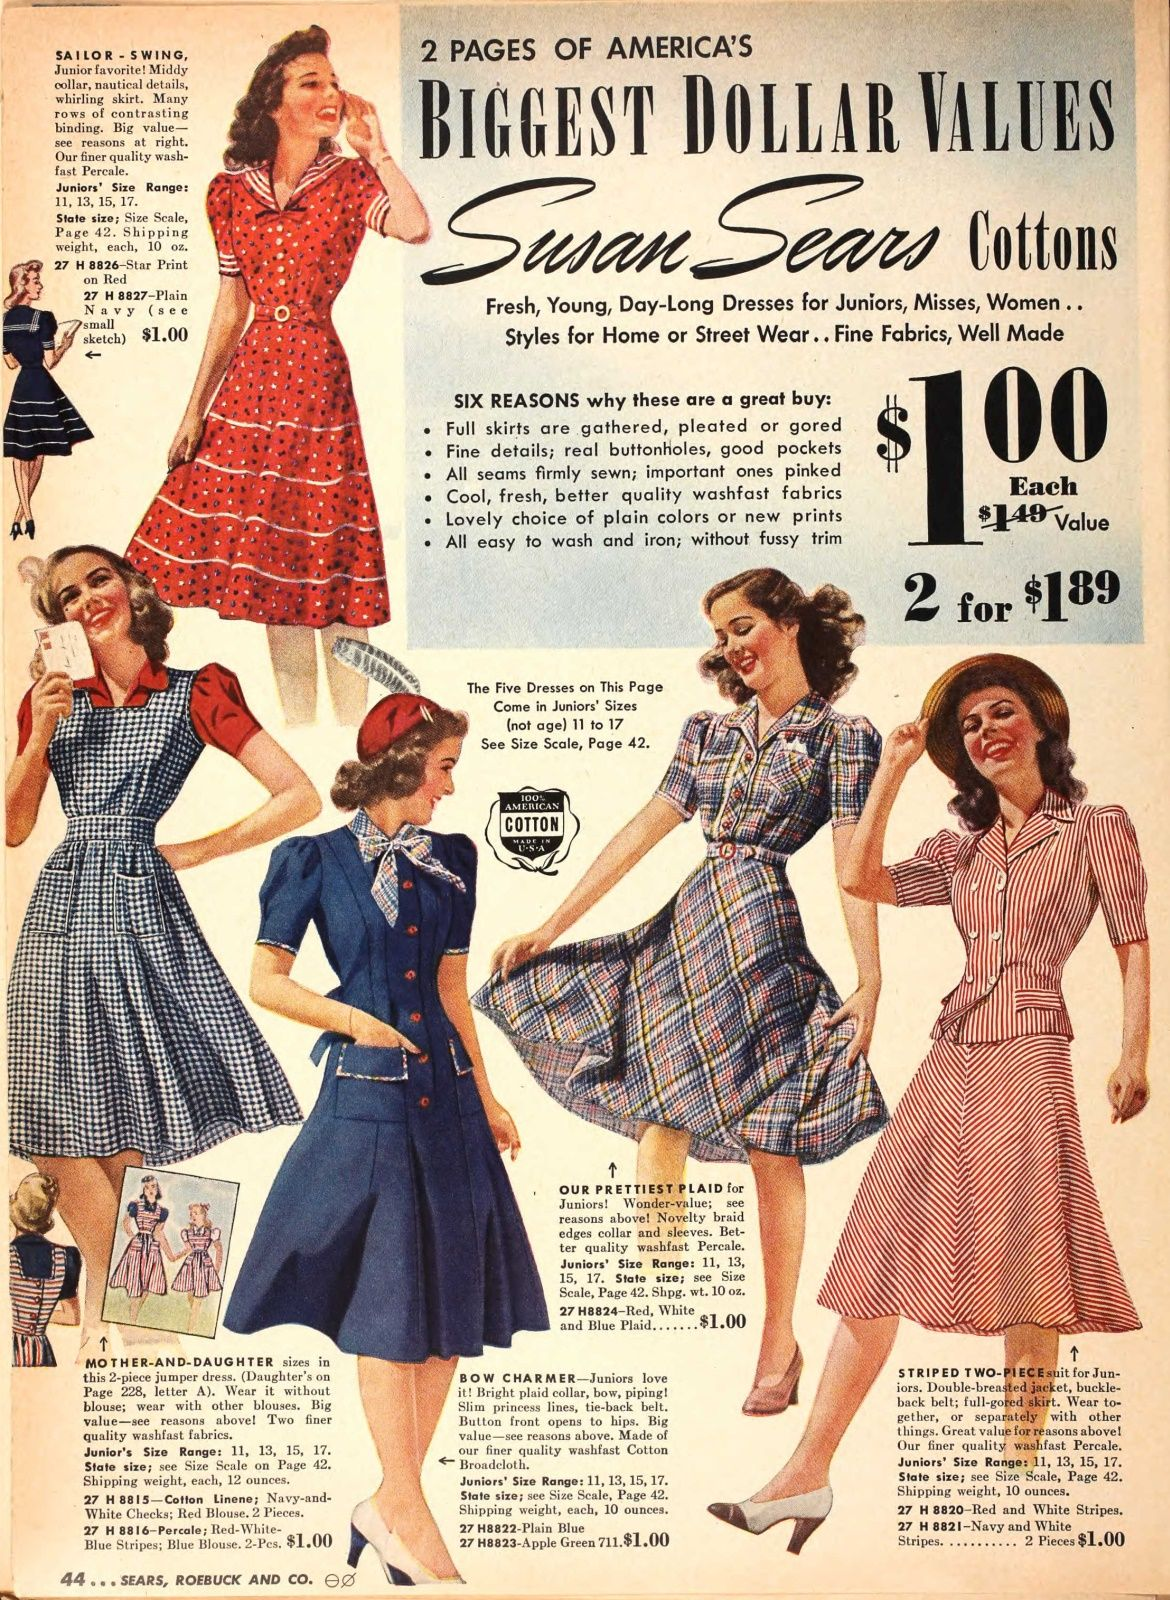 Dresses Why Cant We Have These Prices Now A Days Vintagetimecapsule Vintage Time